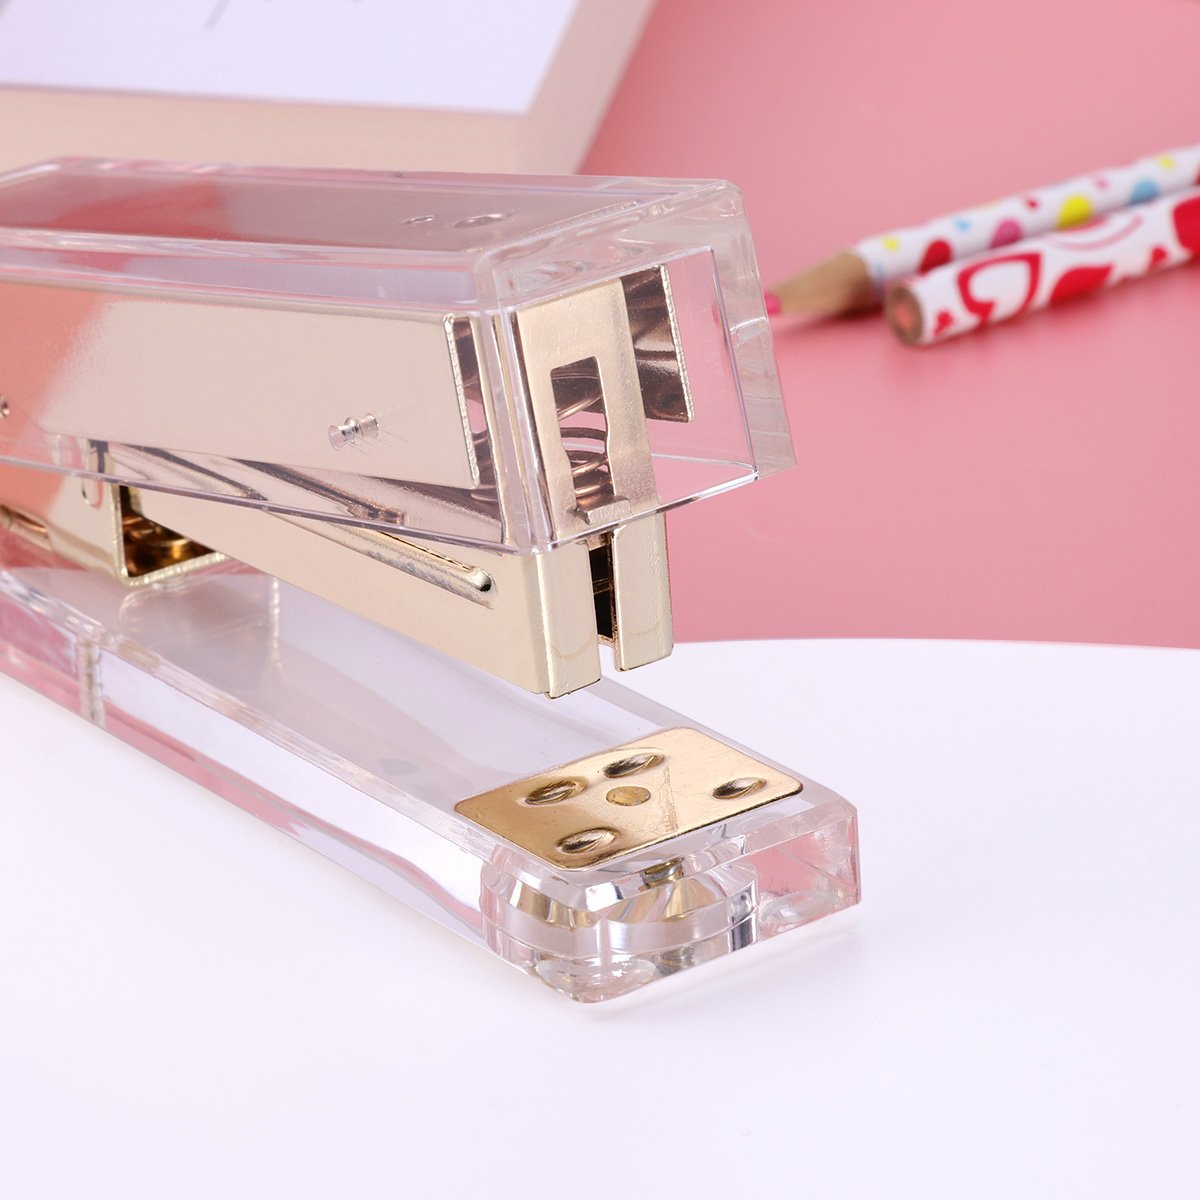 TOYMYTOY Acrylic Clear Desktop Staplers,Classic Desk Staplers for Office, School Use (Gold) by TOYMYTOY (Image #8)